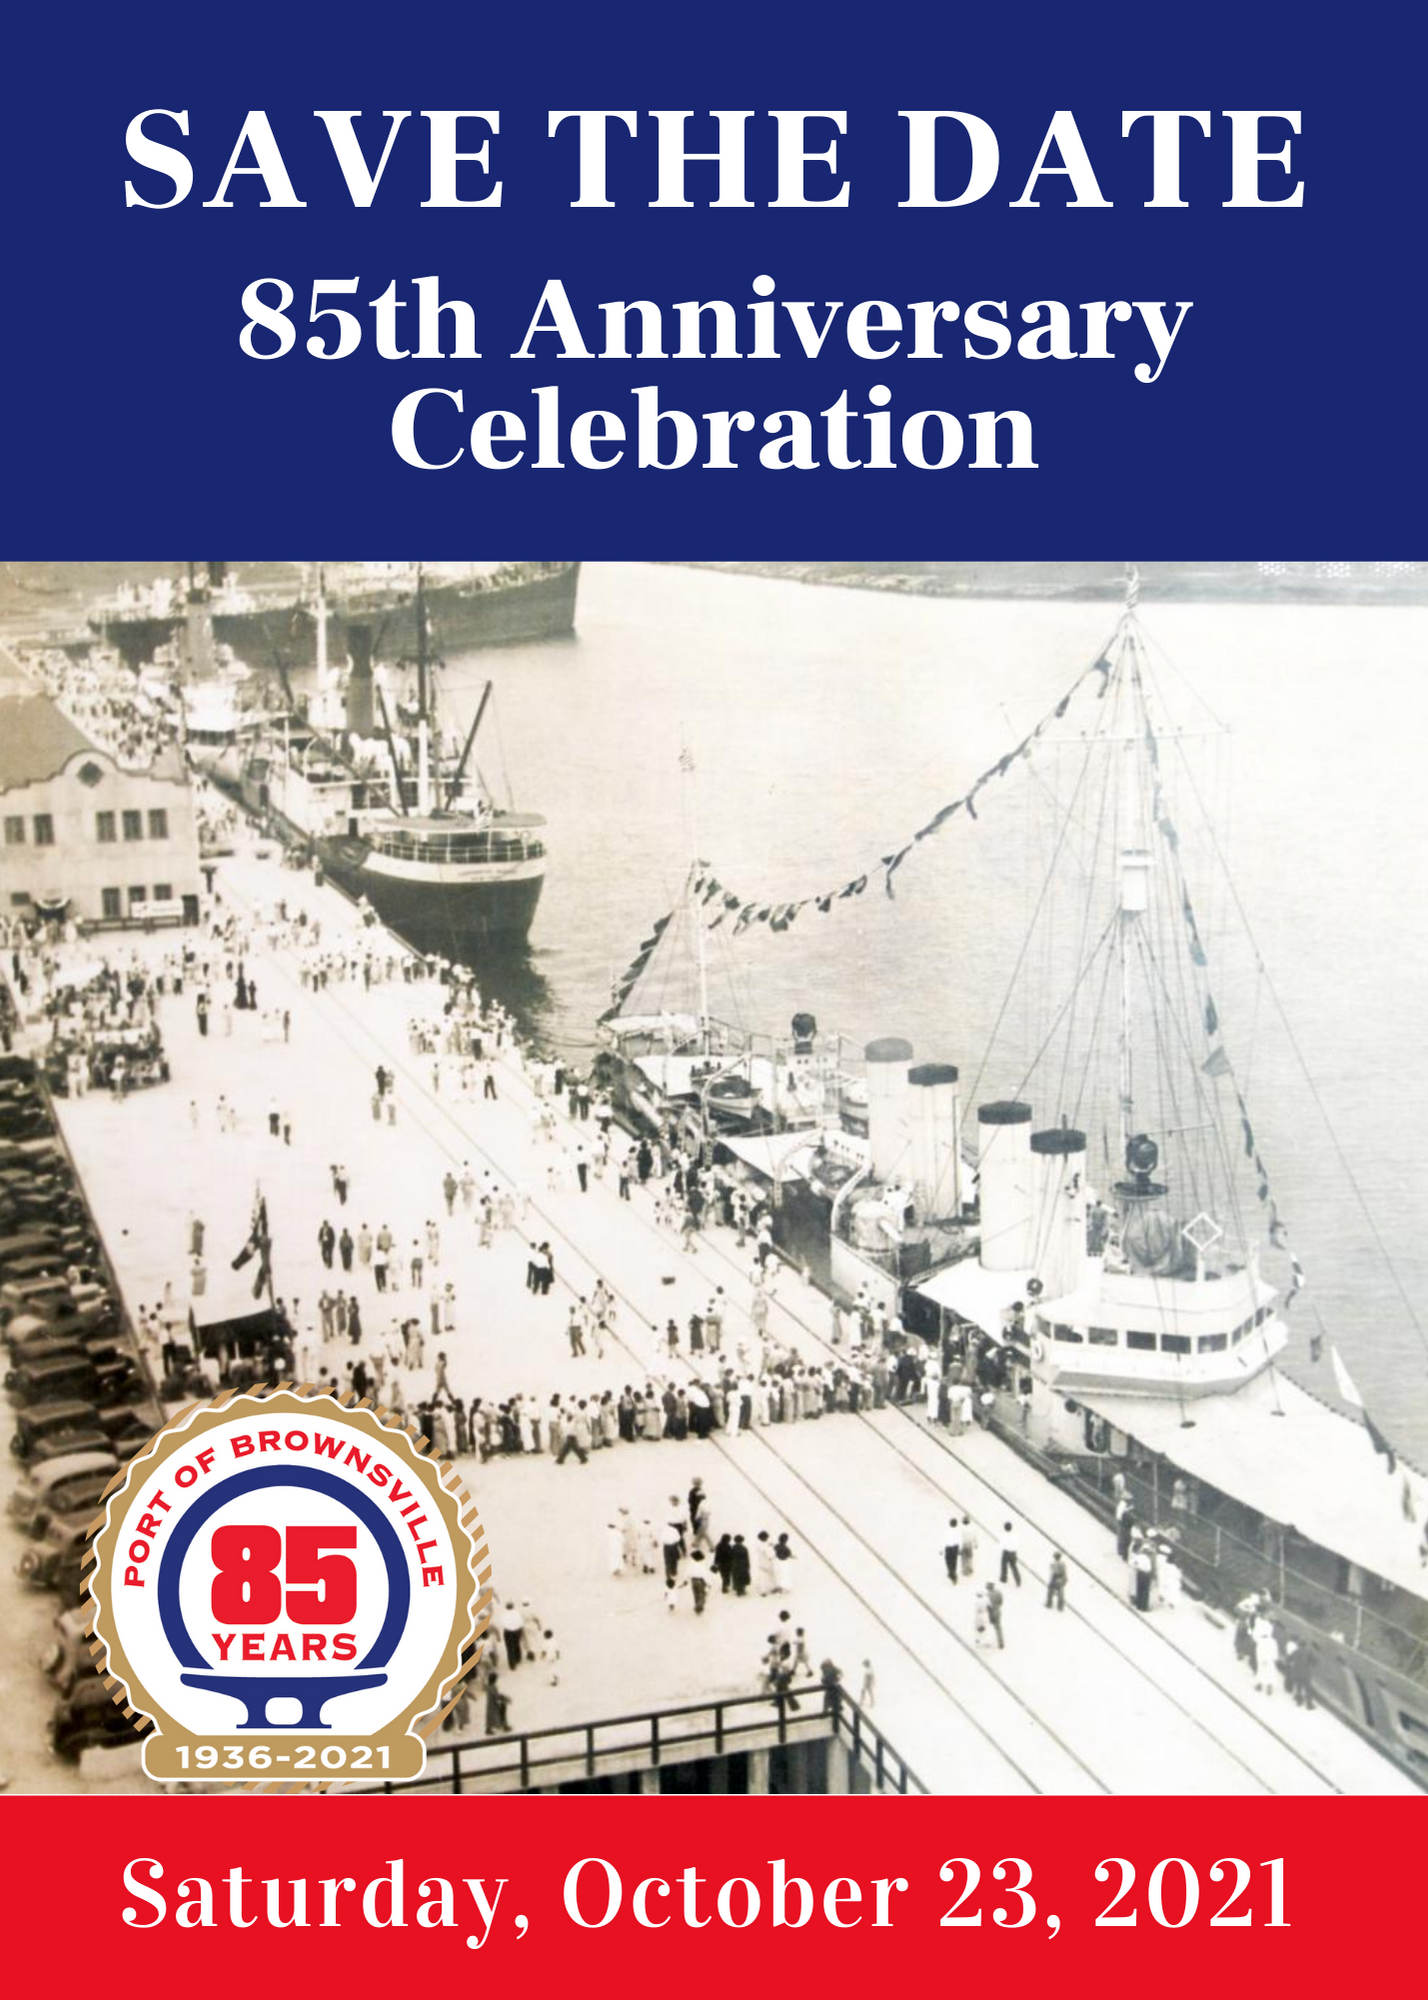 Save the Date 85th Anniversary Community Celebration October 23, 2021